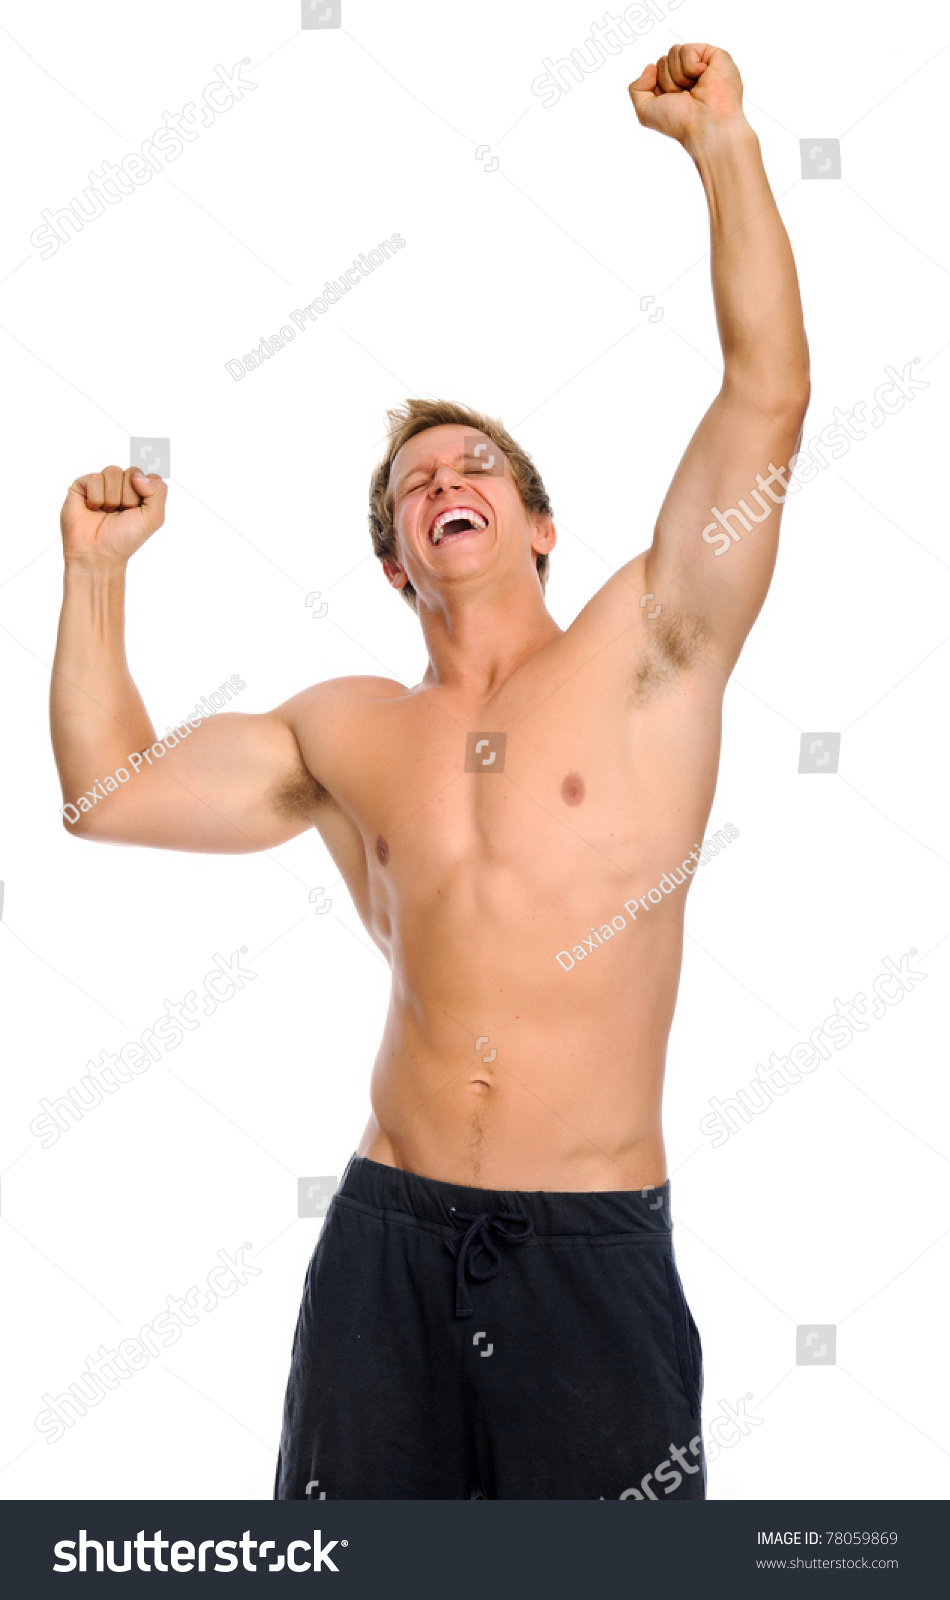 Bare Chested Athletic Man Raises His Arms Up In Triumph Stock Photo 78059869 : Shutterstock